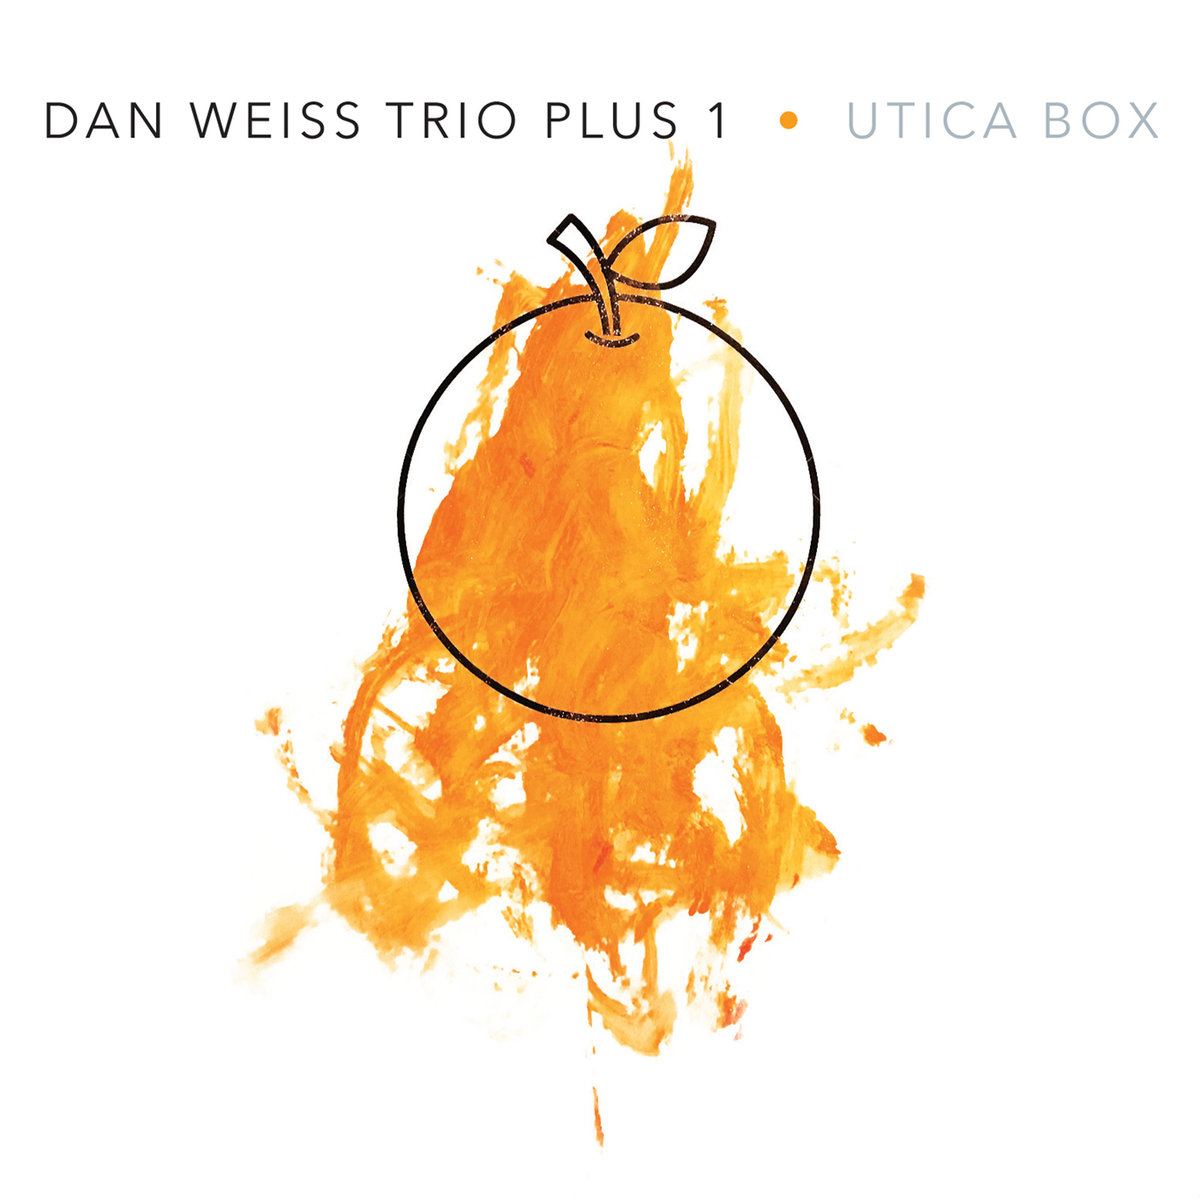 DAN WEISS - Dan Weiss Trio Plus 1 : Utica Box cover